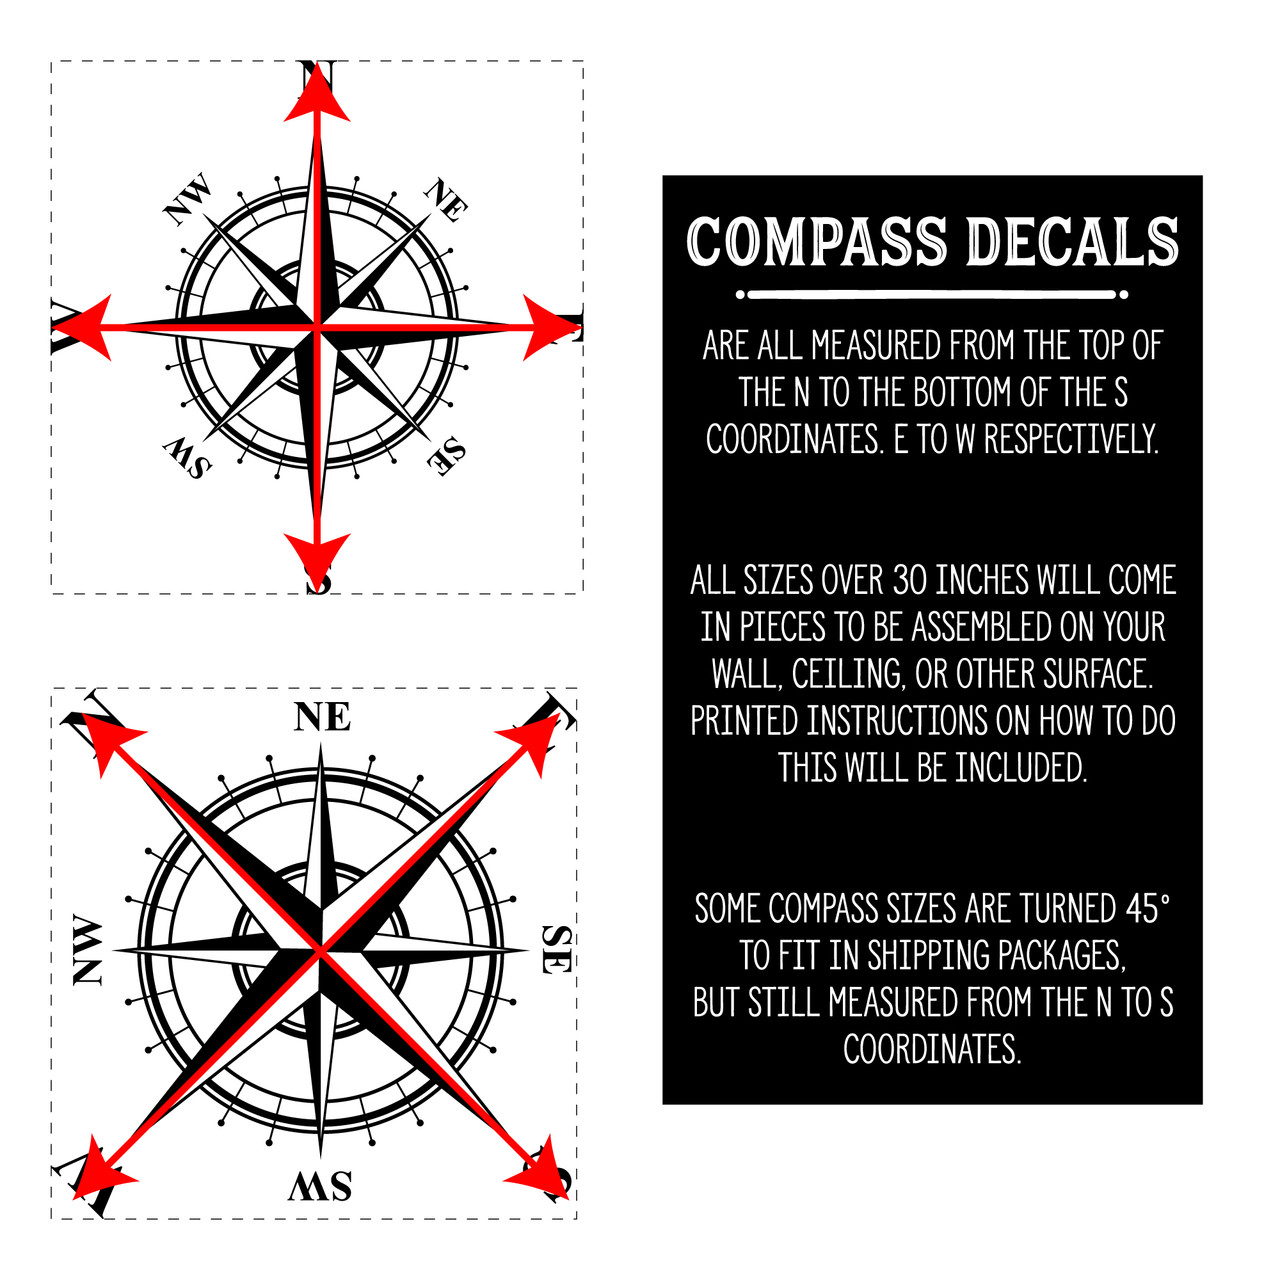 The Charles compass wall decal is measured from the top of the N to the bottom of the S, as shown here.